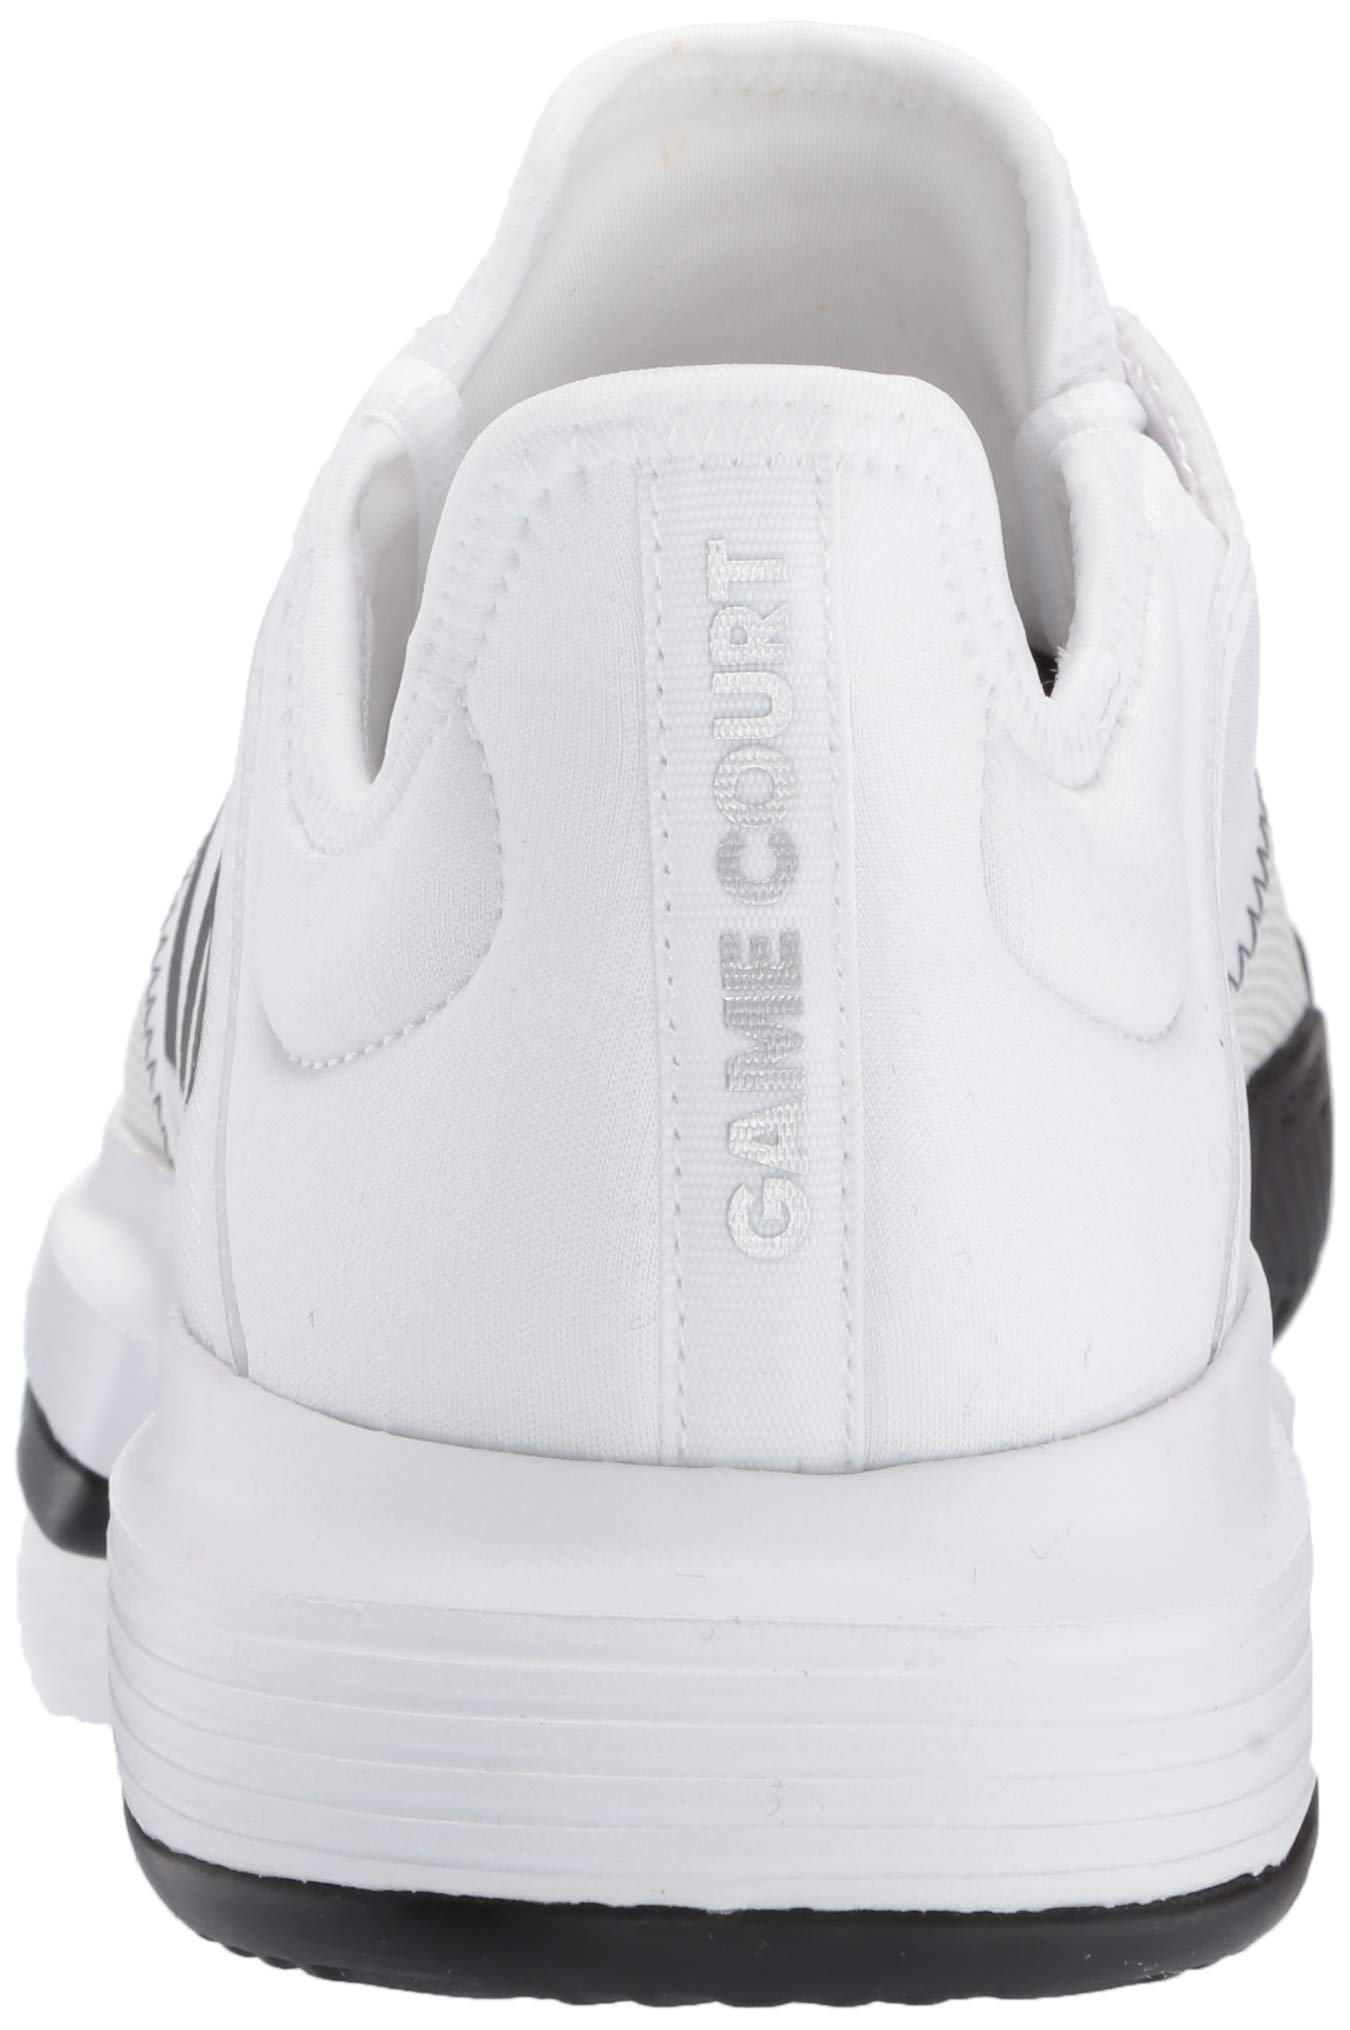 adidas Men's Gamecourt, White/Black/Grey 6.5 M US by adidas (Image #2)